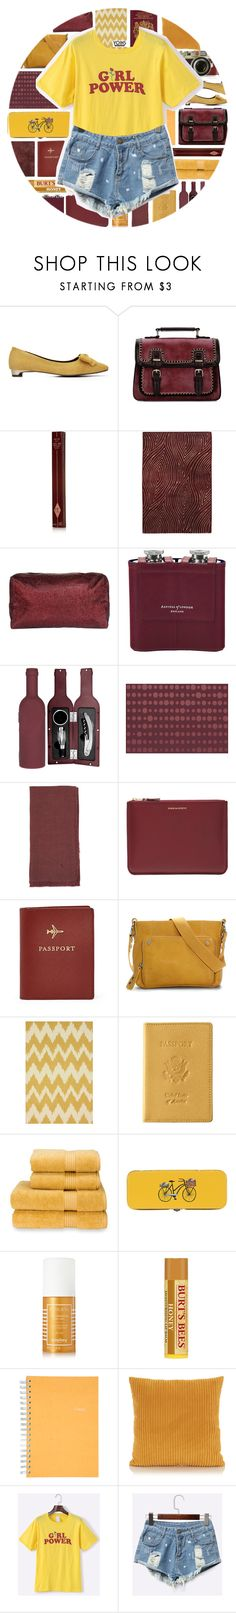 """YOINS"" by xgracieeee ❤ liked on Polyvore featuring Leica, Charlotte Tilbury, Chandra Rugs, L'AURA, Aspinal of London, Cole & Son, Sir/Madam, Comme des Garçons, FOSSIL and Ellington"